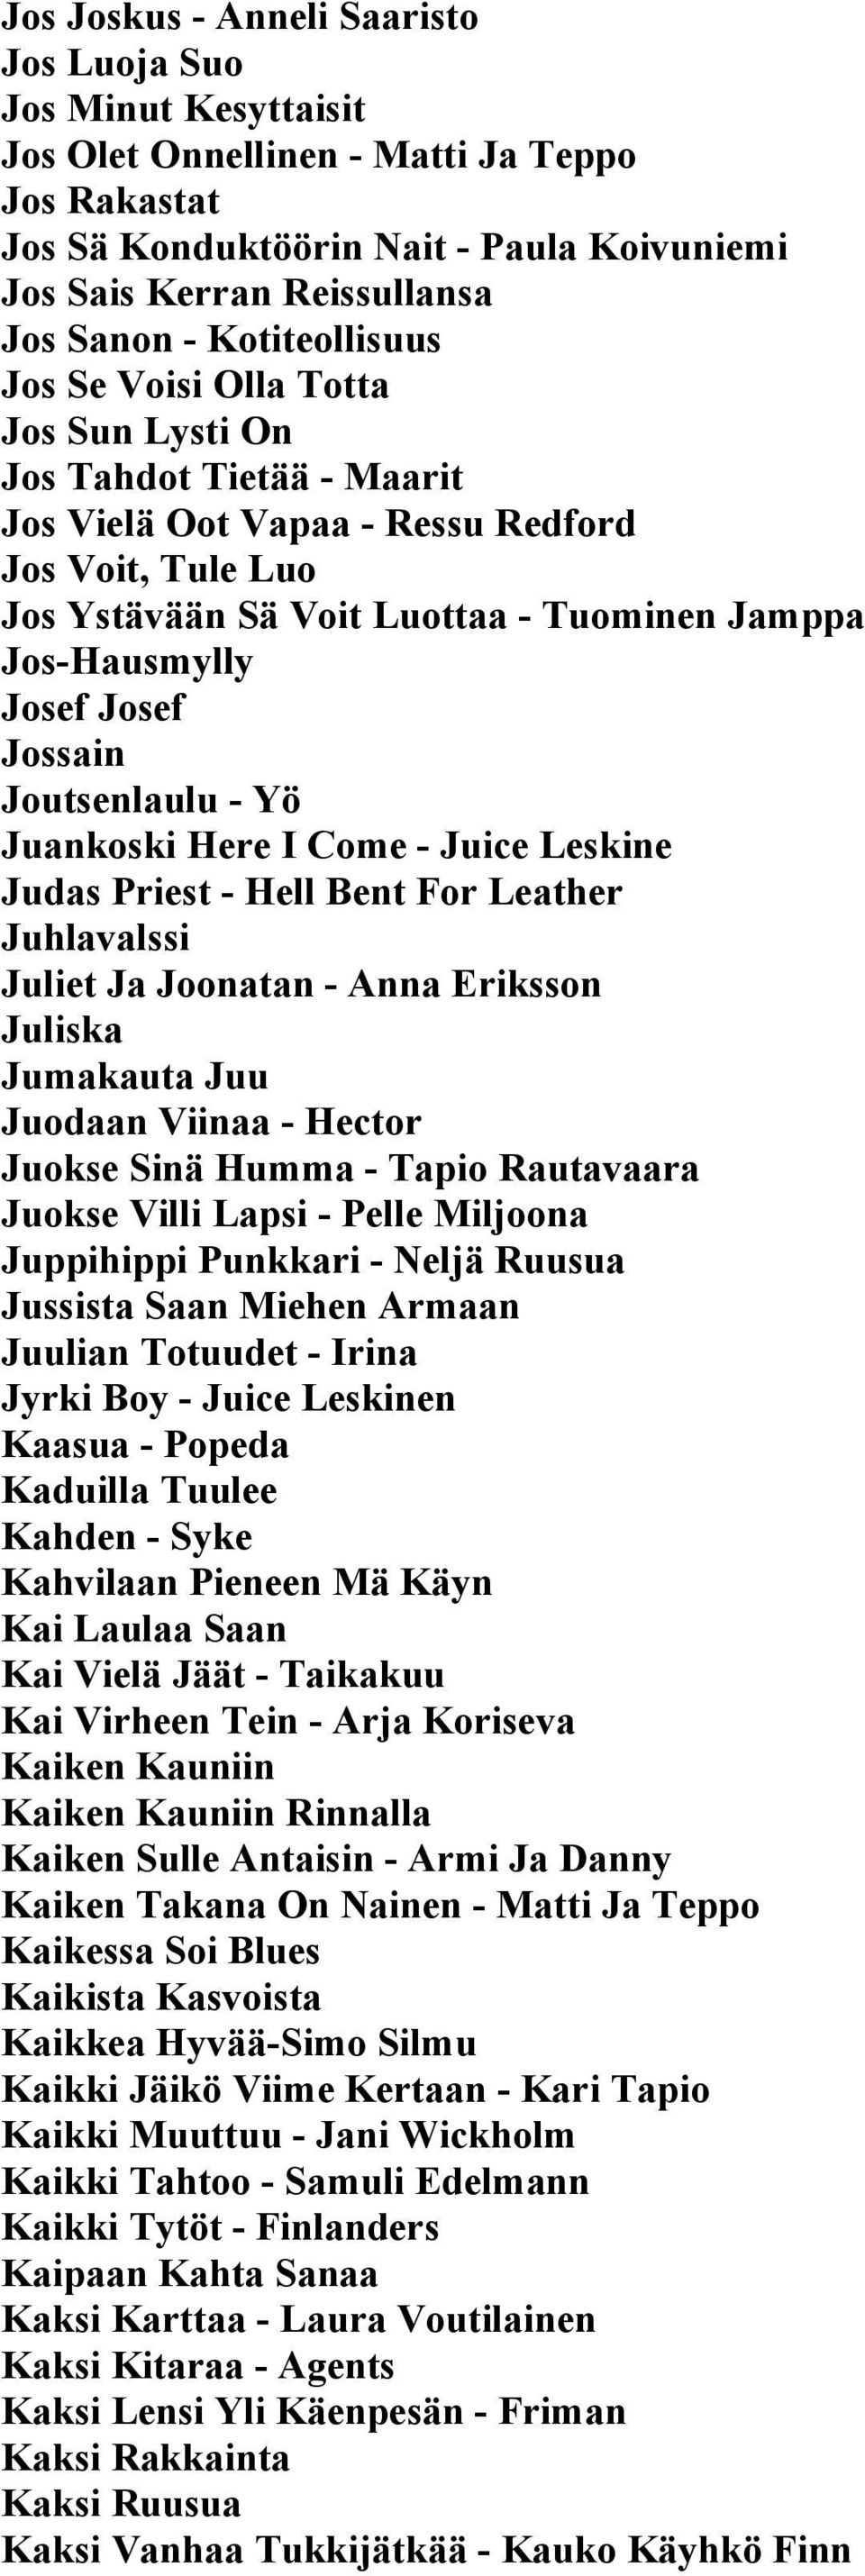 Josef Josef Jossain Joutsenlaulu - Yö Juankoski Here I Come - Juice Leskine Judas Priest - Hell Bent For Leather Juhlavalssi Juliet Ja Joonatan - Anna Eriksson Juliska Jumakauta Juu Juodaan Viinaa -